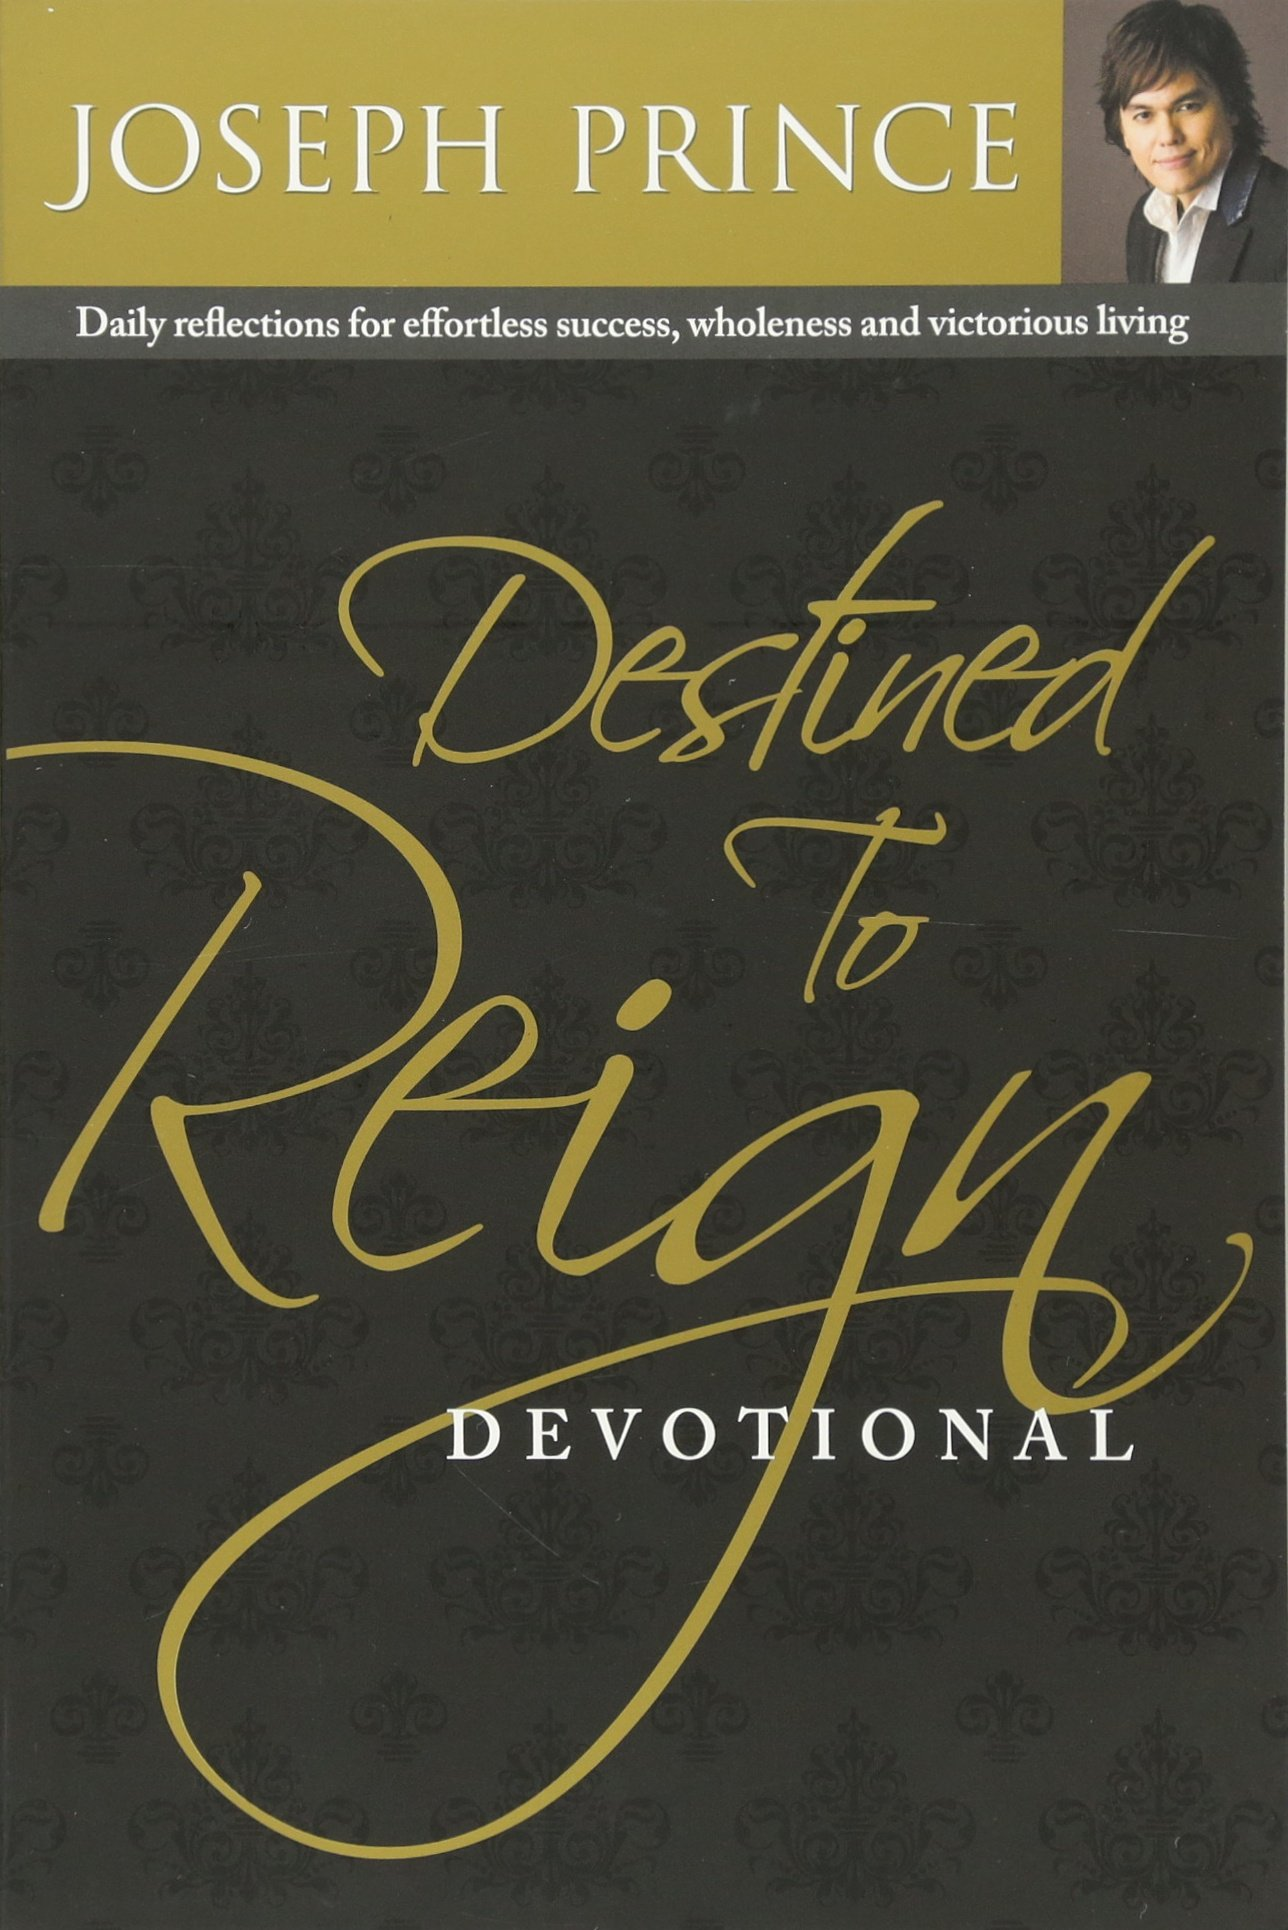 Destined to Reign Devotional: Daily Reflections for Effortless Success, Wholeness and Victorious Living ebook